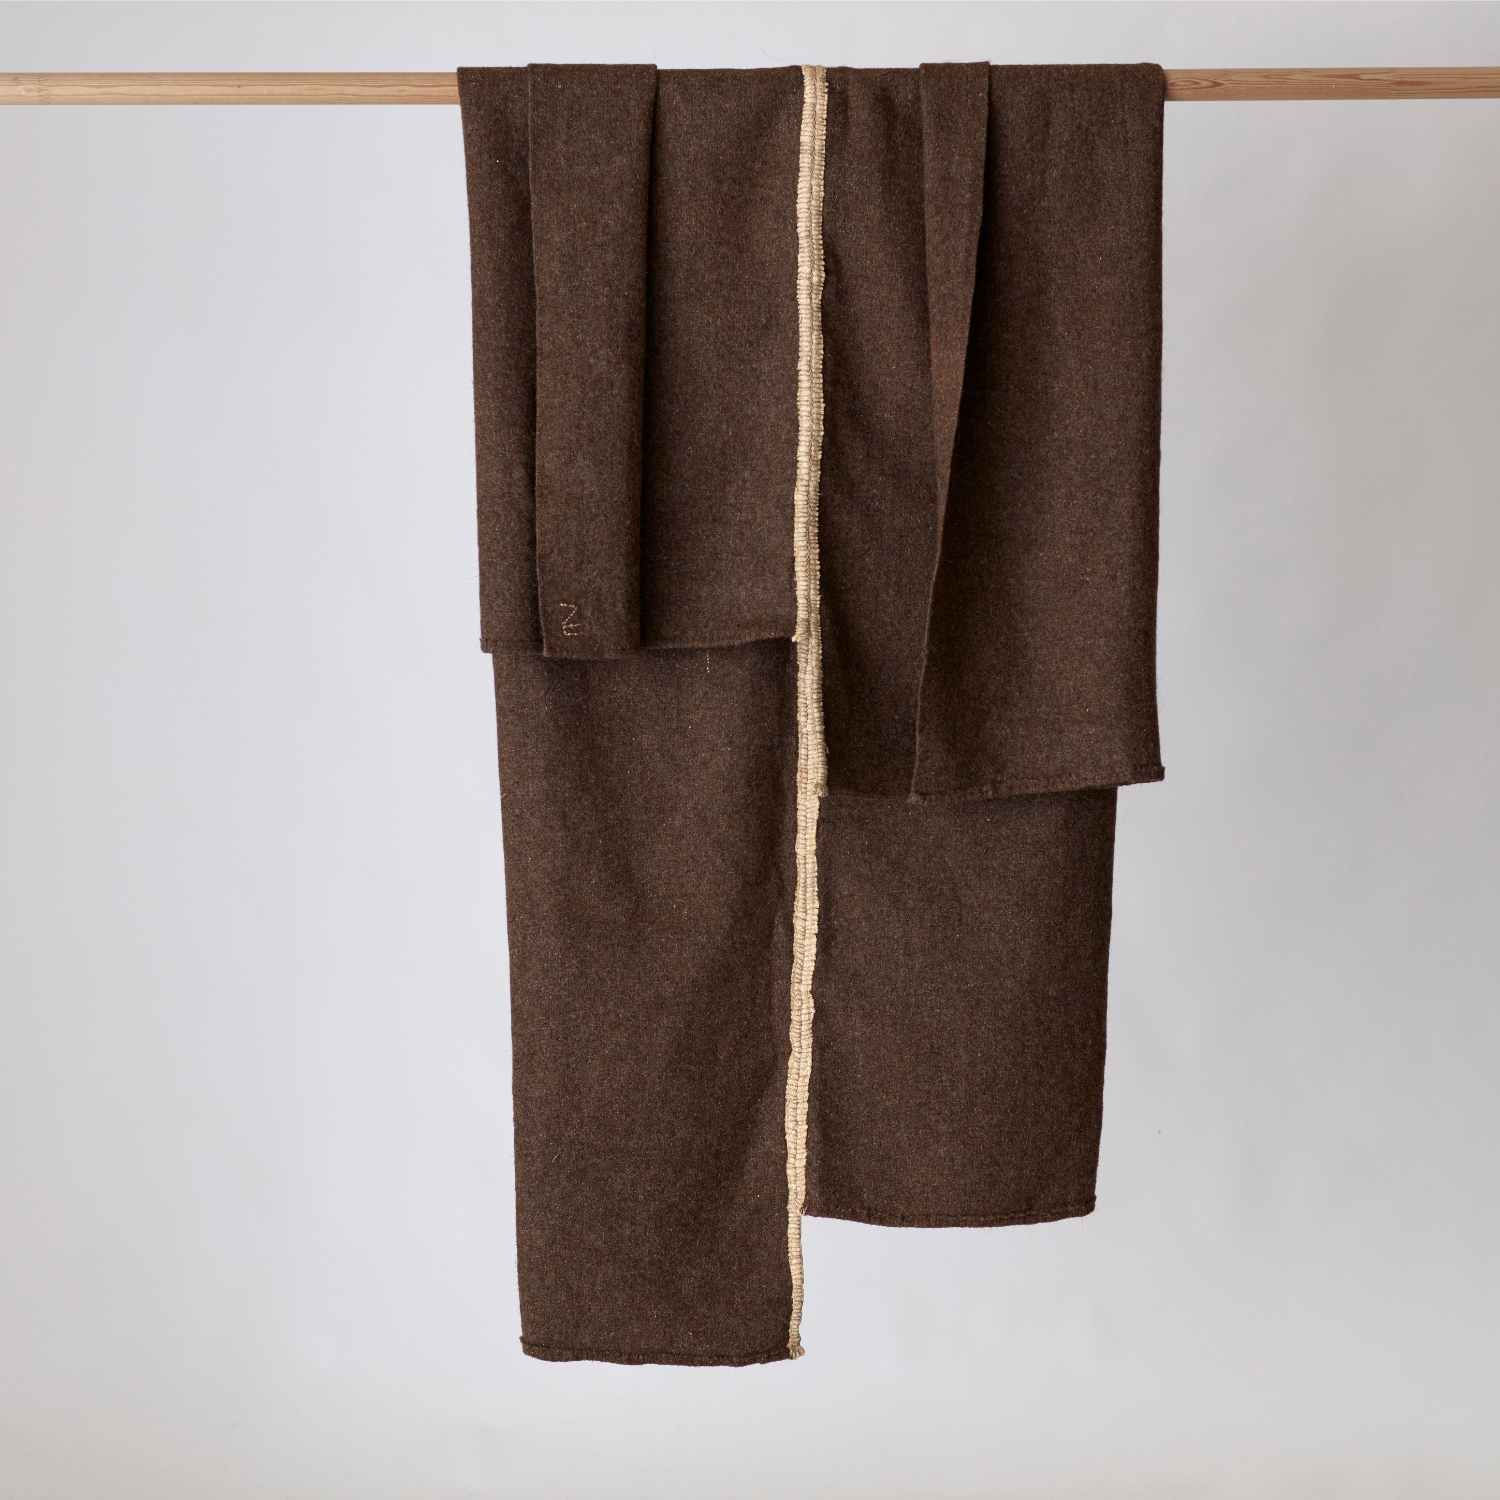 AU Limited Edition hand sewn recycled wool blanket